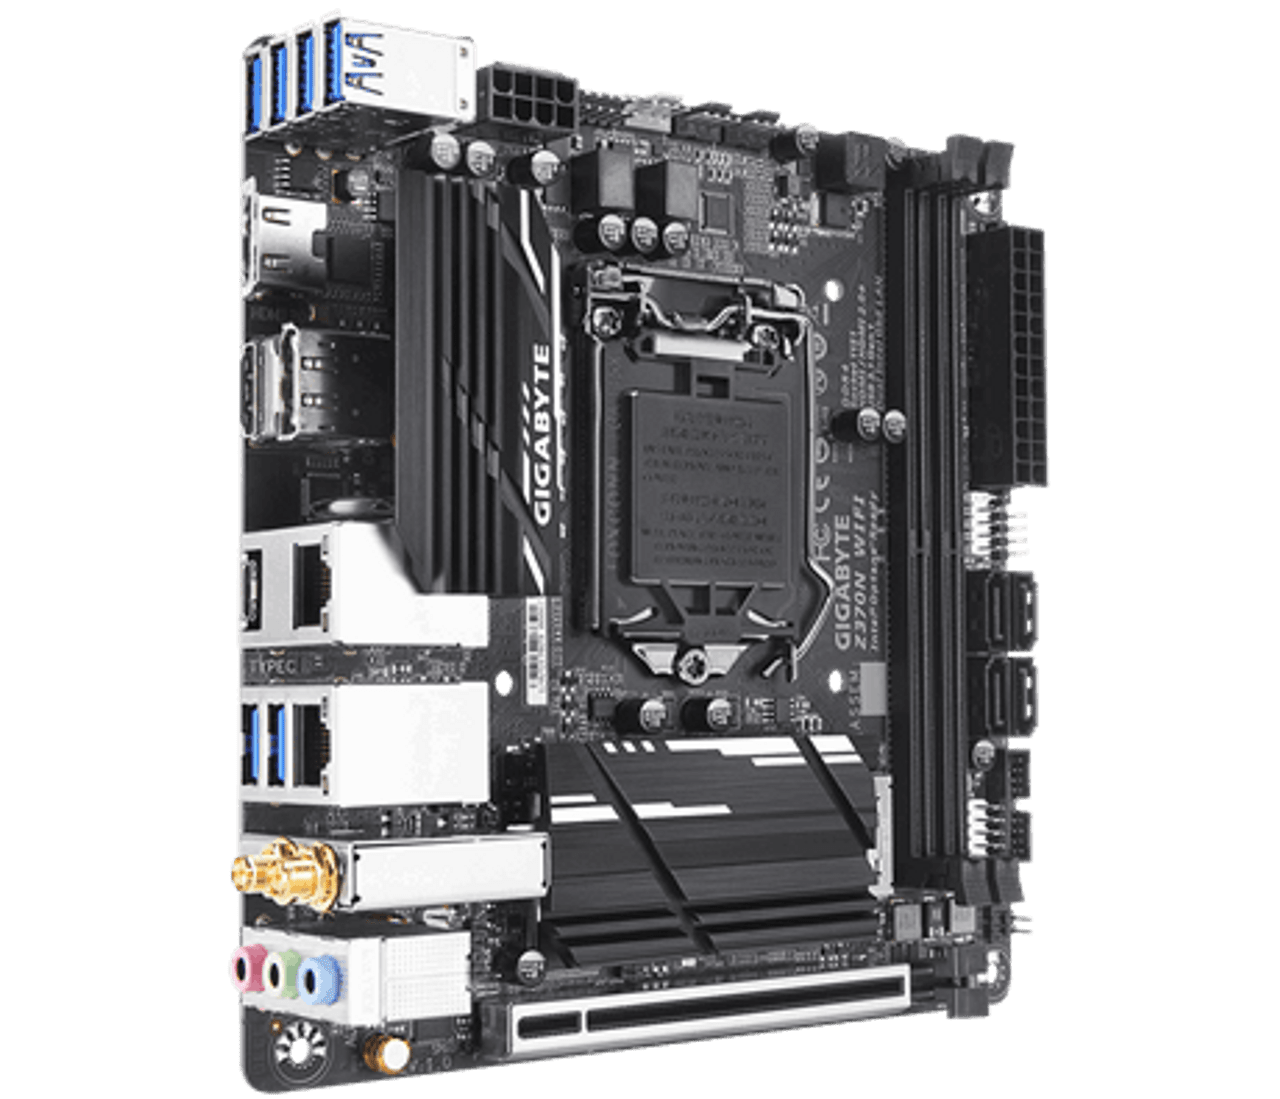 Gigabyte Z370N WiFi - Ultra Durable Motherboard with HDMI 2 0a 21:9 / HDR,  PCIe bifurcation support, Intel USB 3 1 Gen1 with USB Type-C, Dual Intel